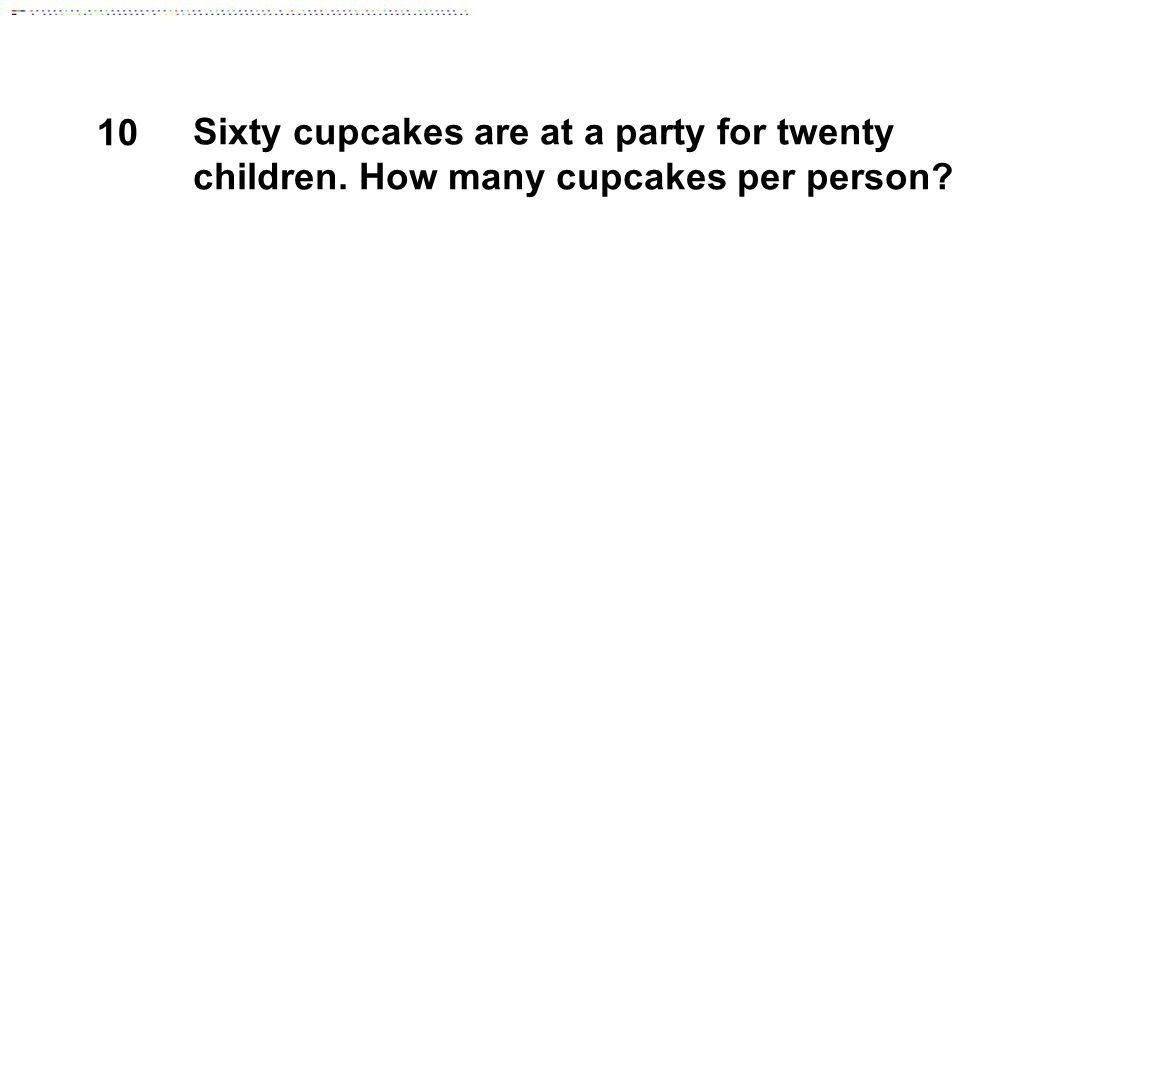 10 Sixty cupcakes are at a party for twenty children.